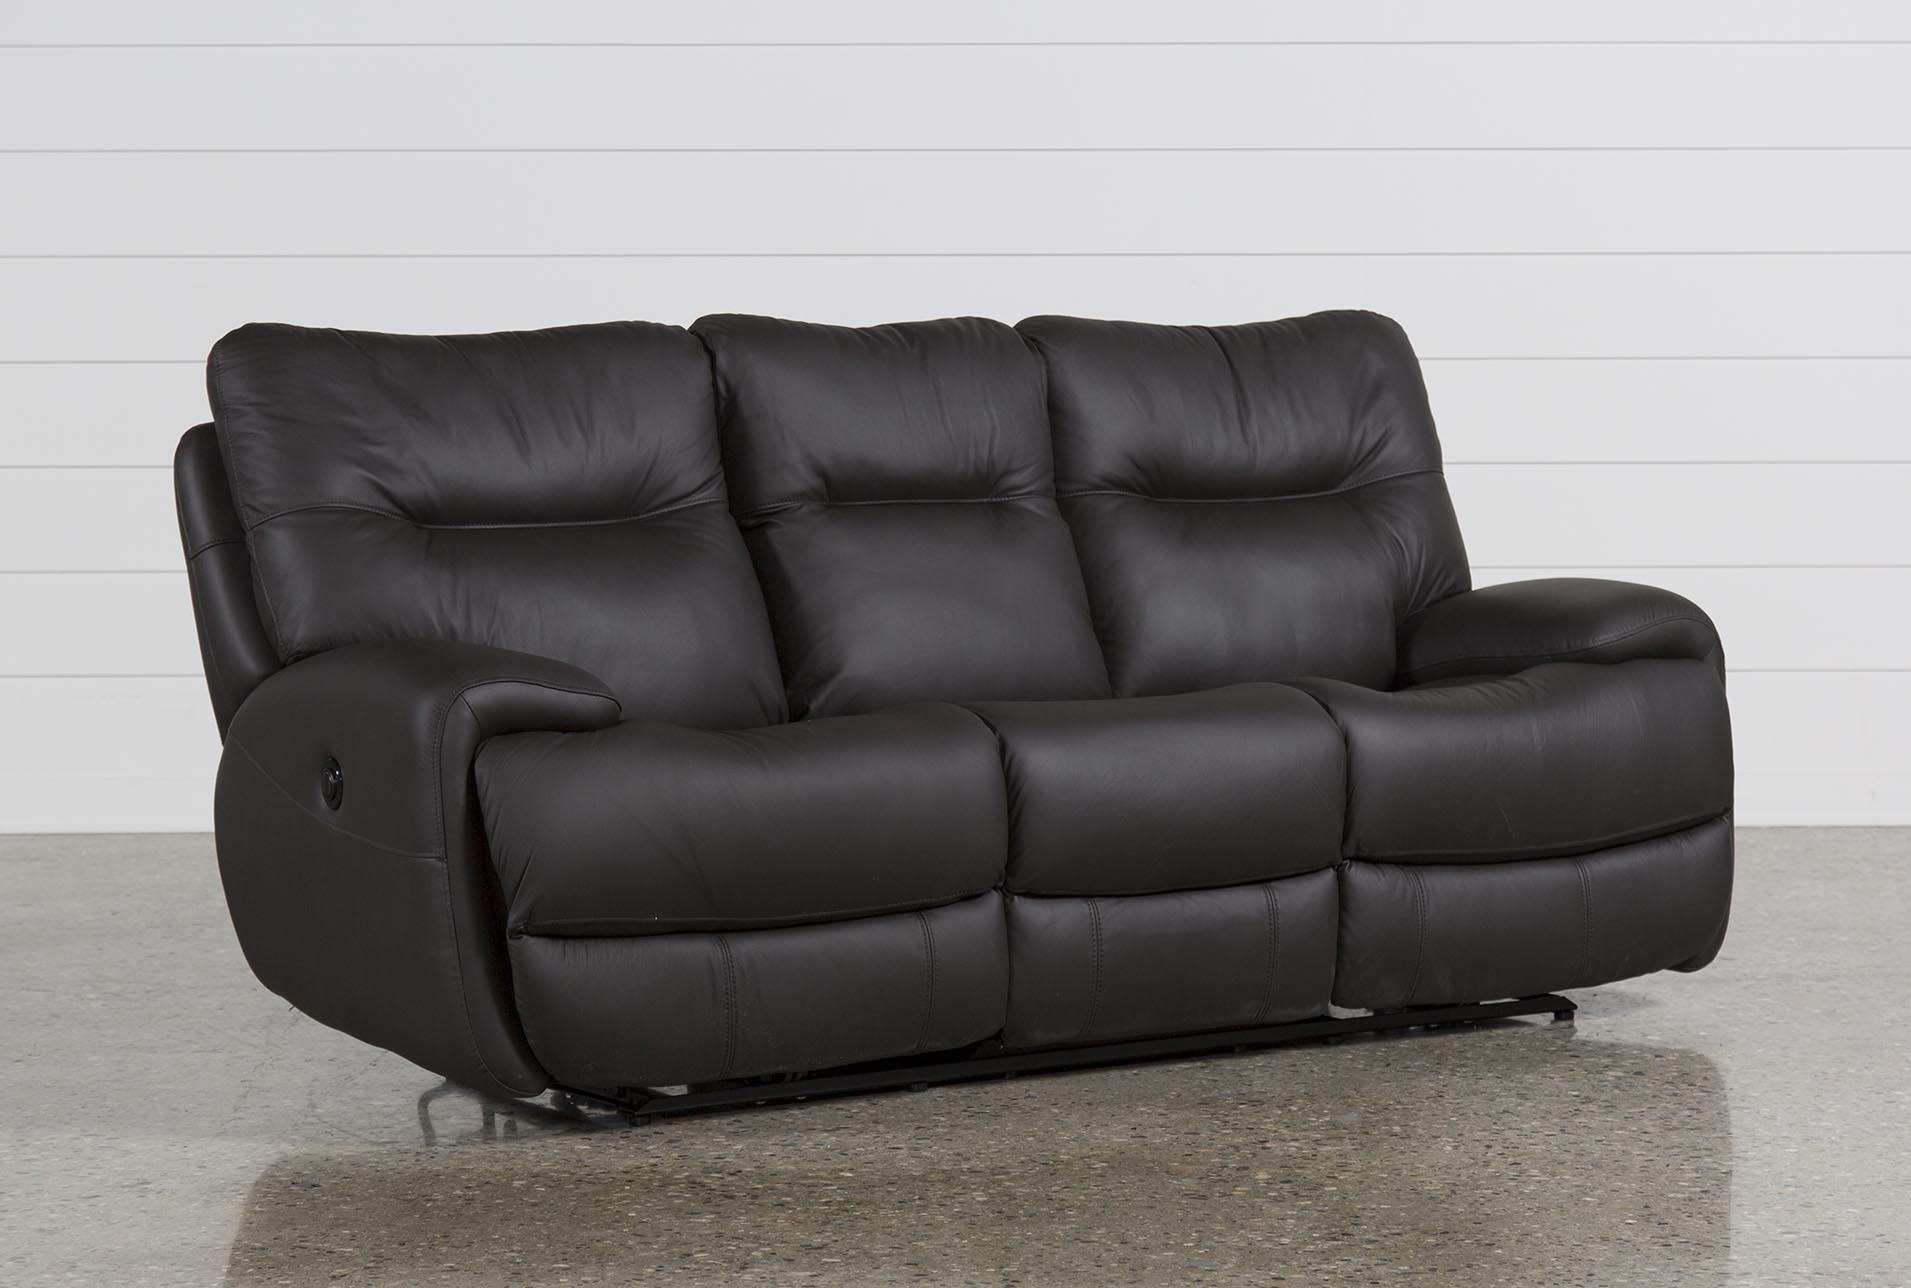 Exceptionnel Oliver Graphite Leather Power Reclining Sofa   360